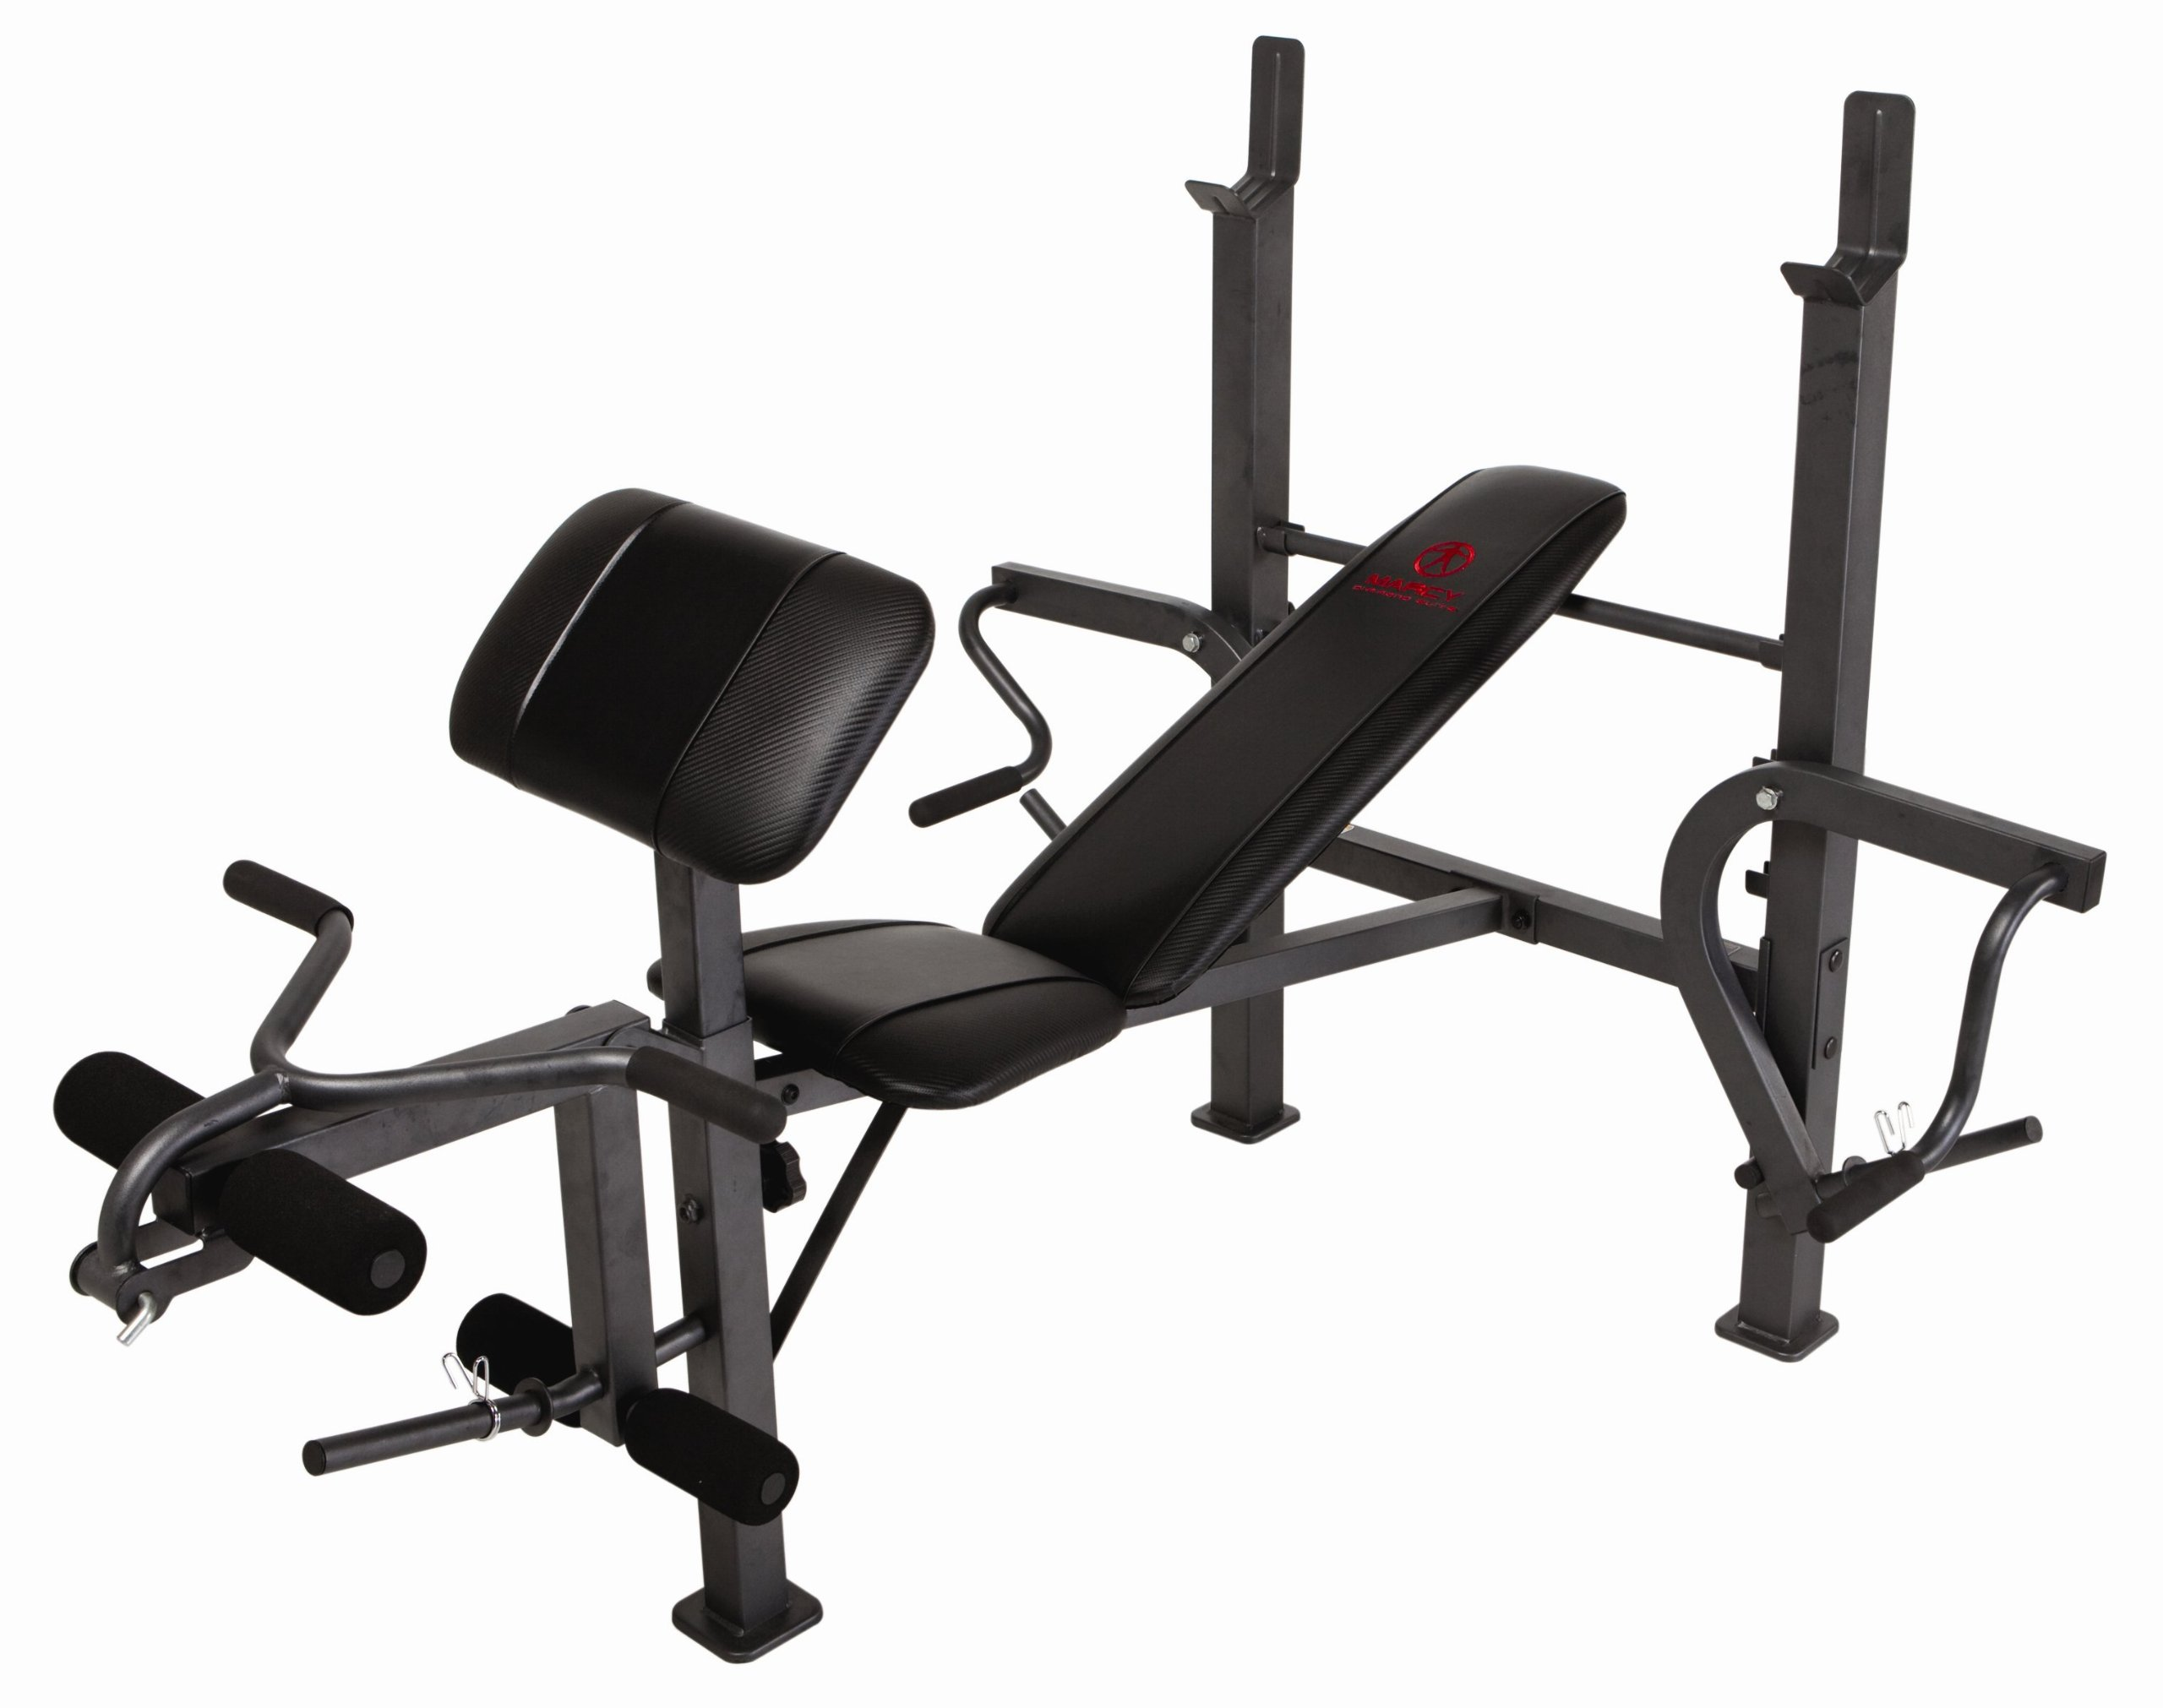 Marcy Standard Weight Bench with Butterfly and Leg Developer Multifunctional Workout Station for Home Gym MD-389